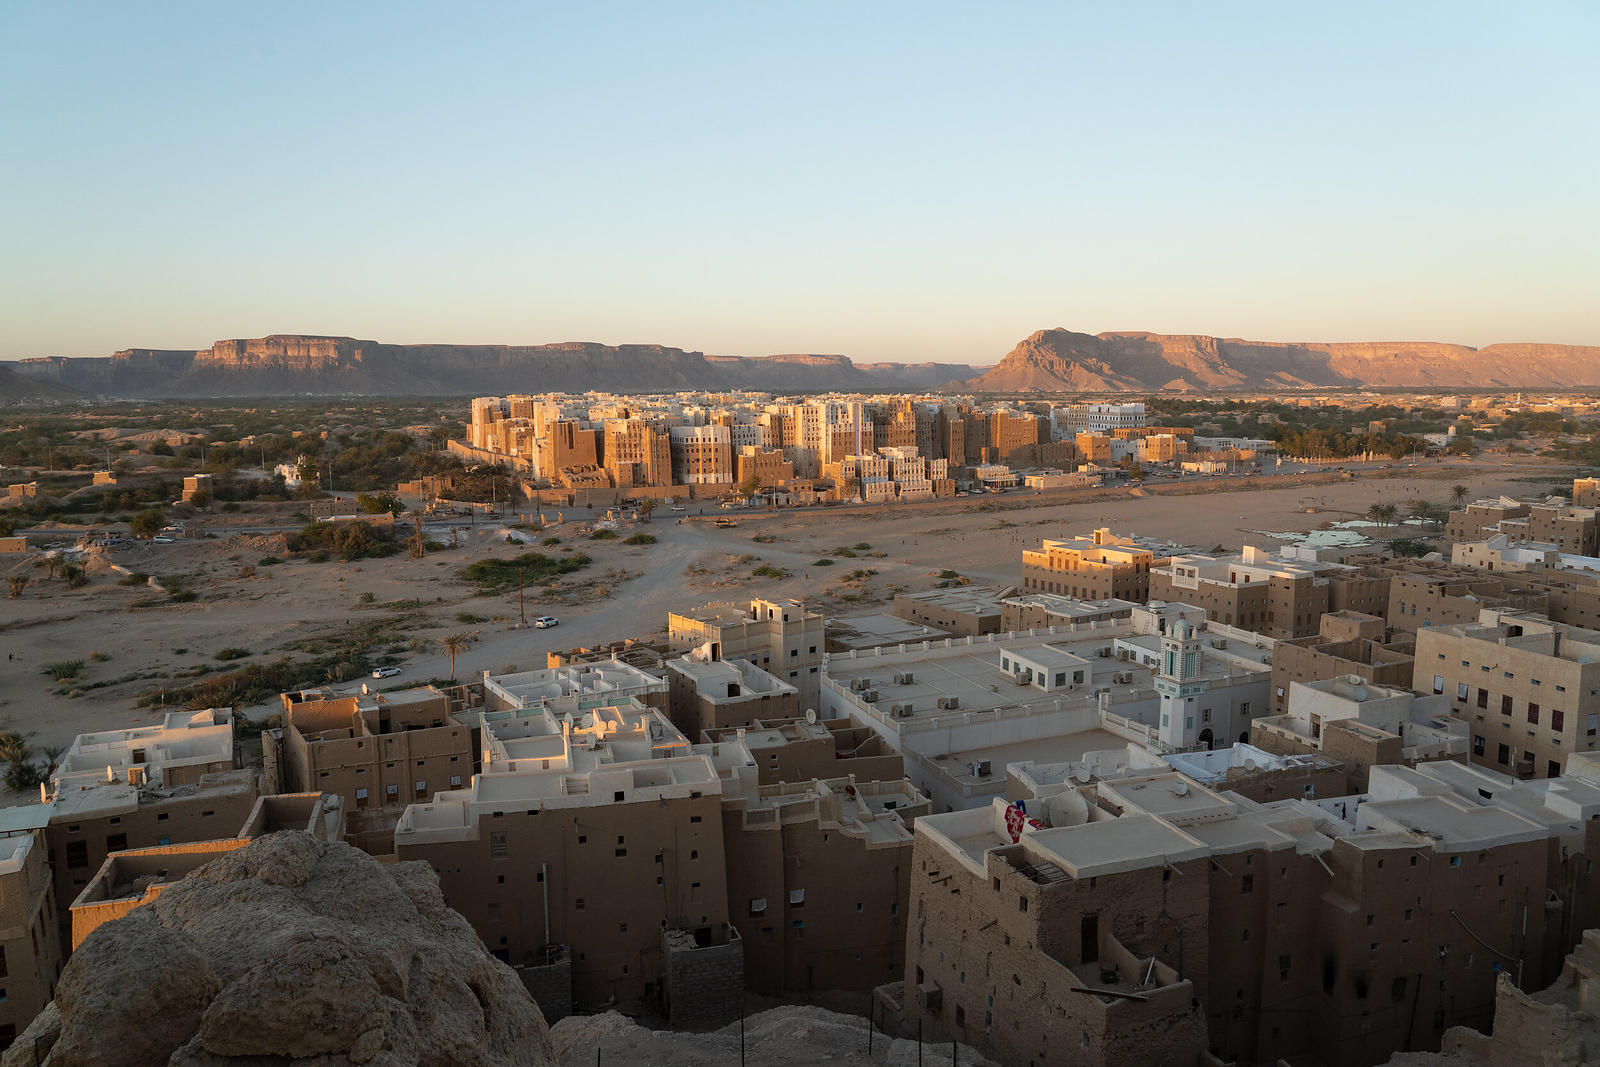 Sunset over Shibam at an Overlook